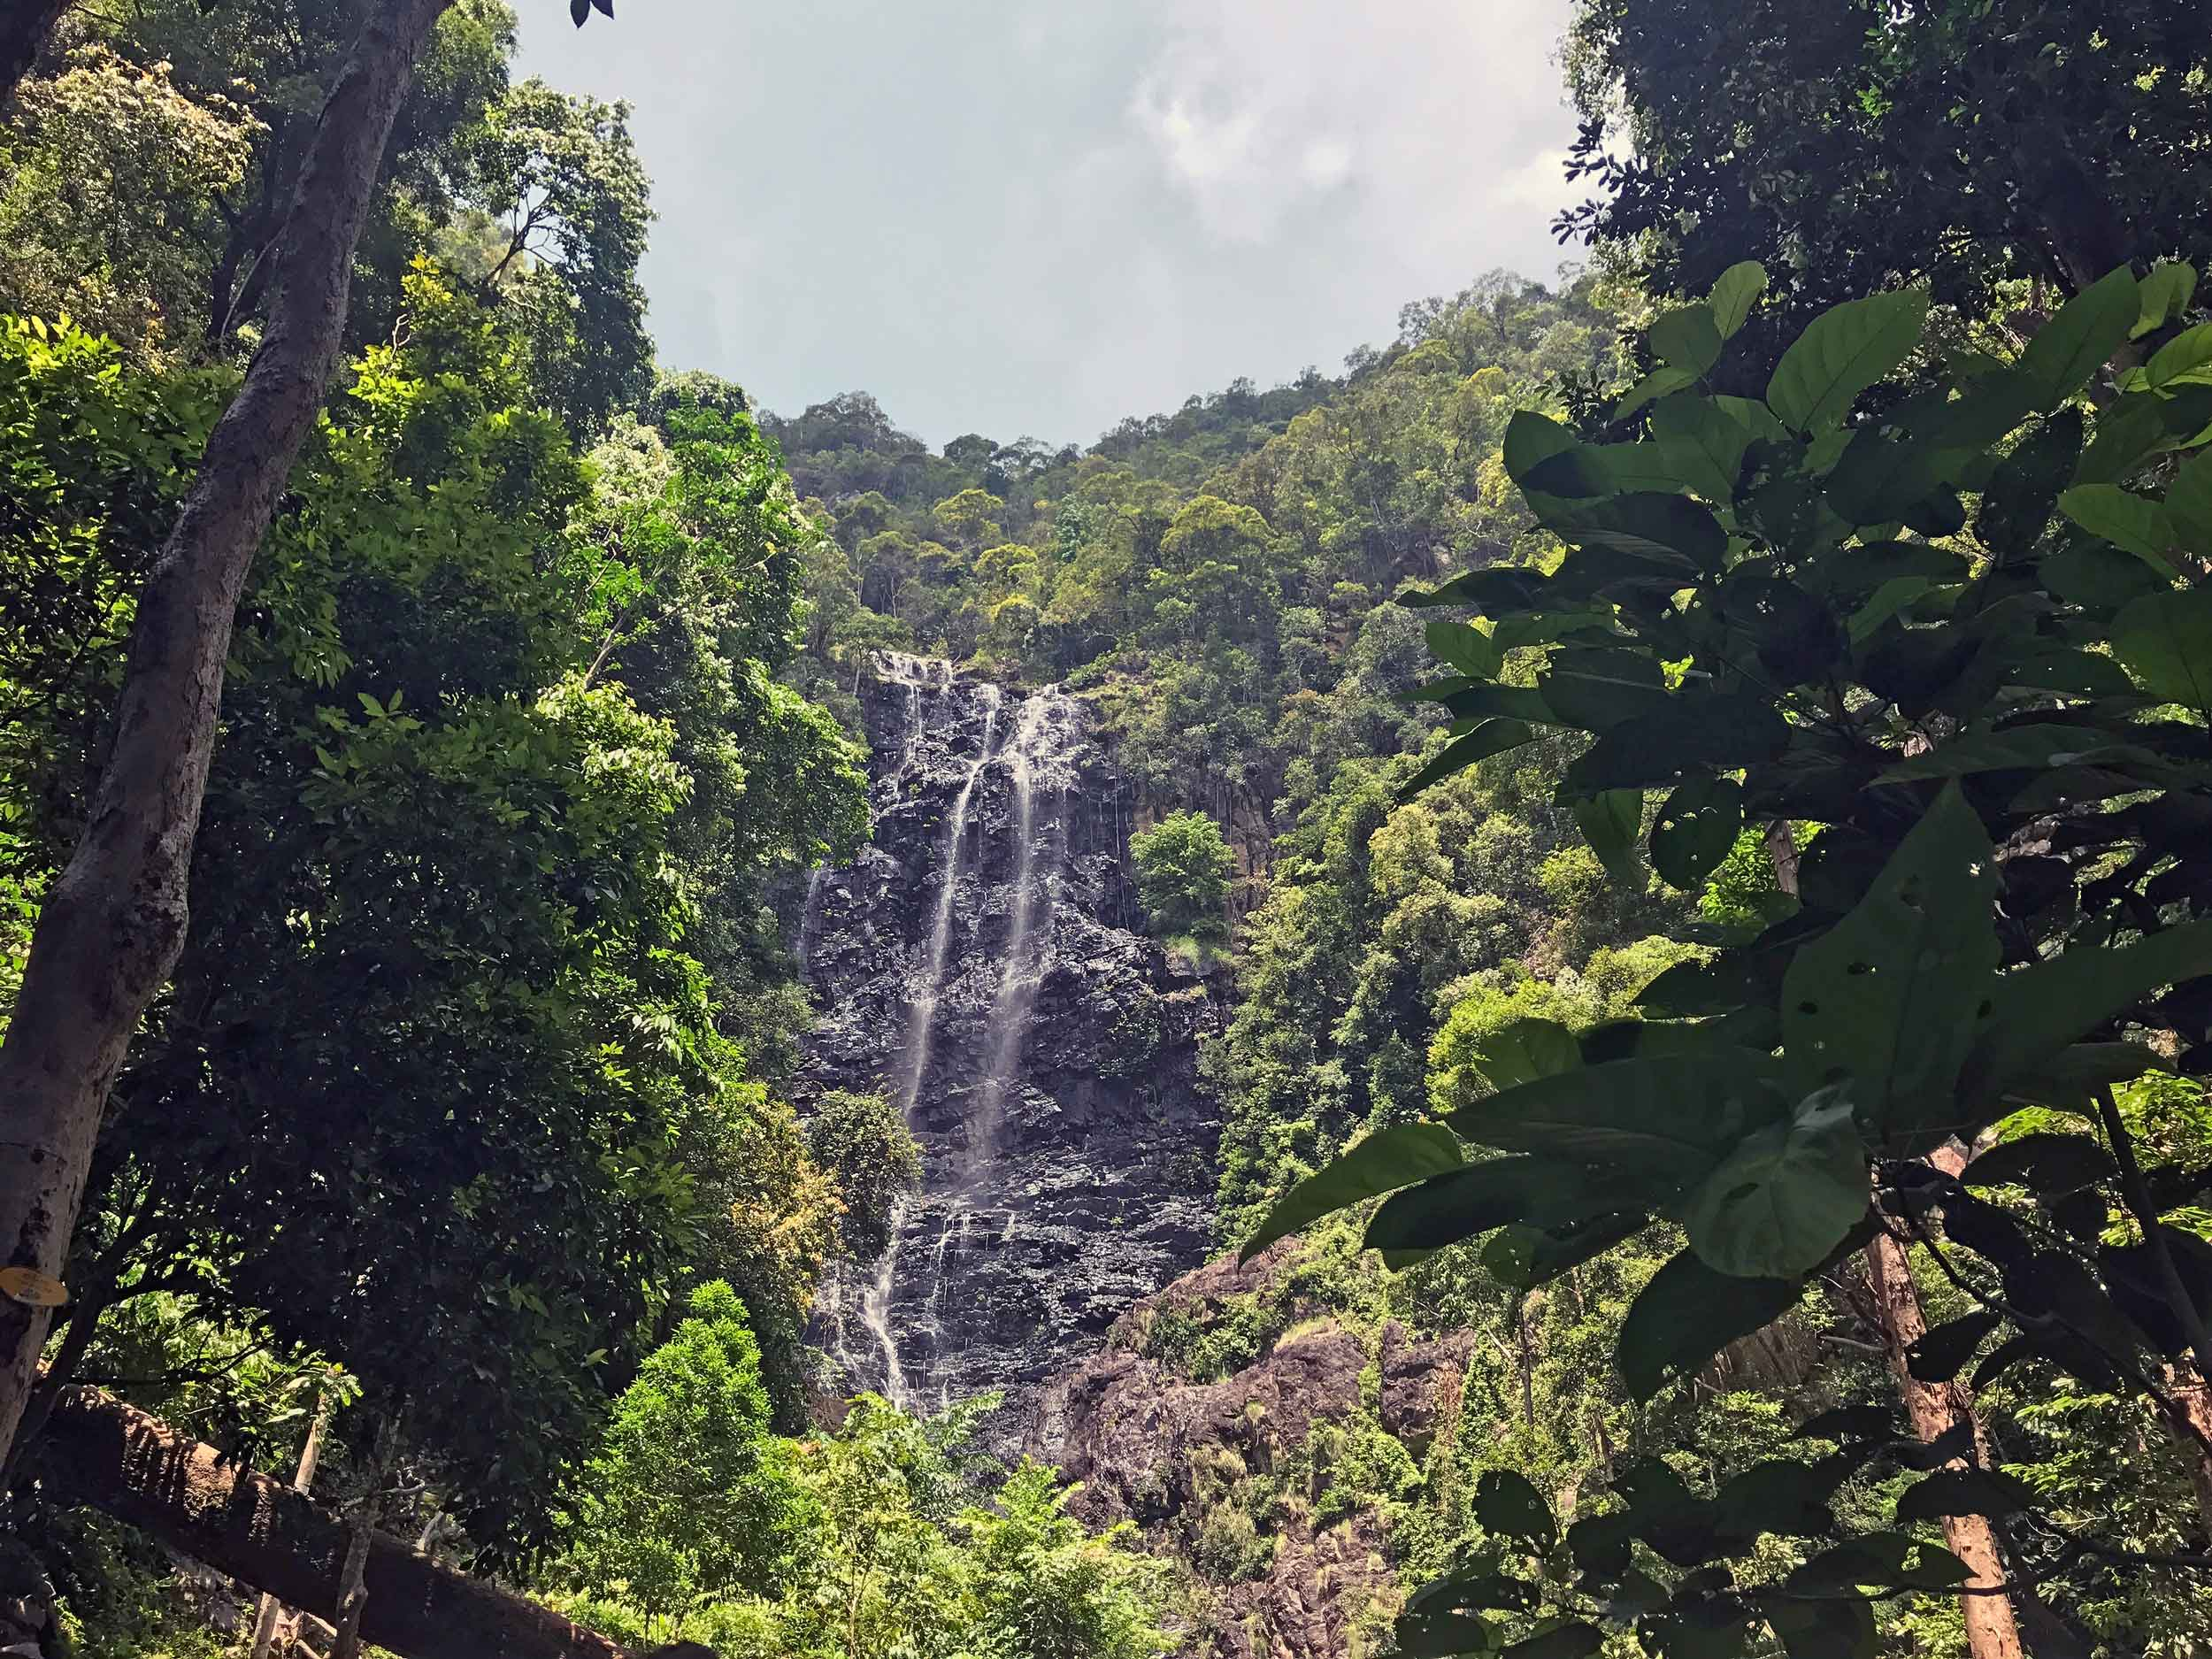 Another one of Langkawi's falls, towering Air Terjun Temurun was still impressive even during the island's dry season.